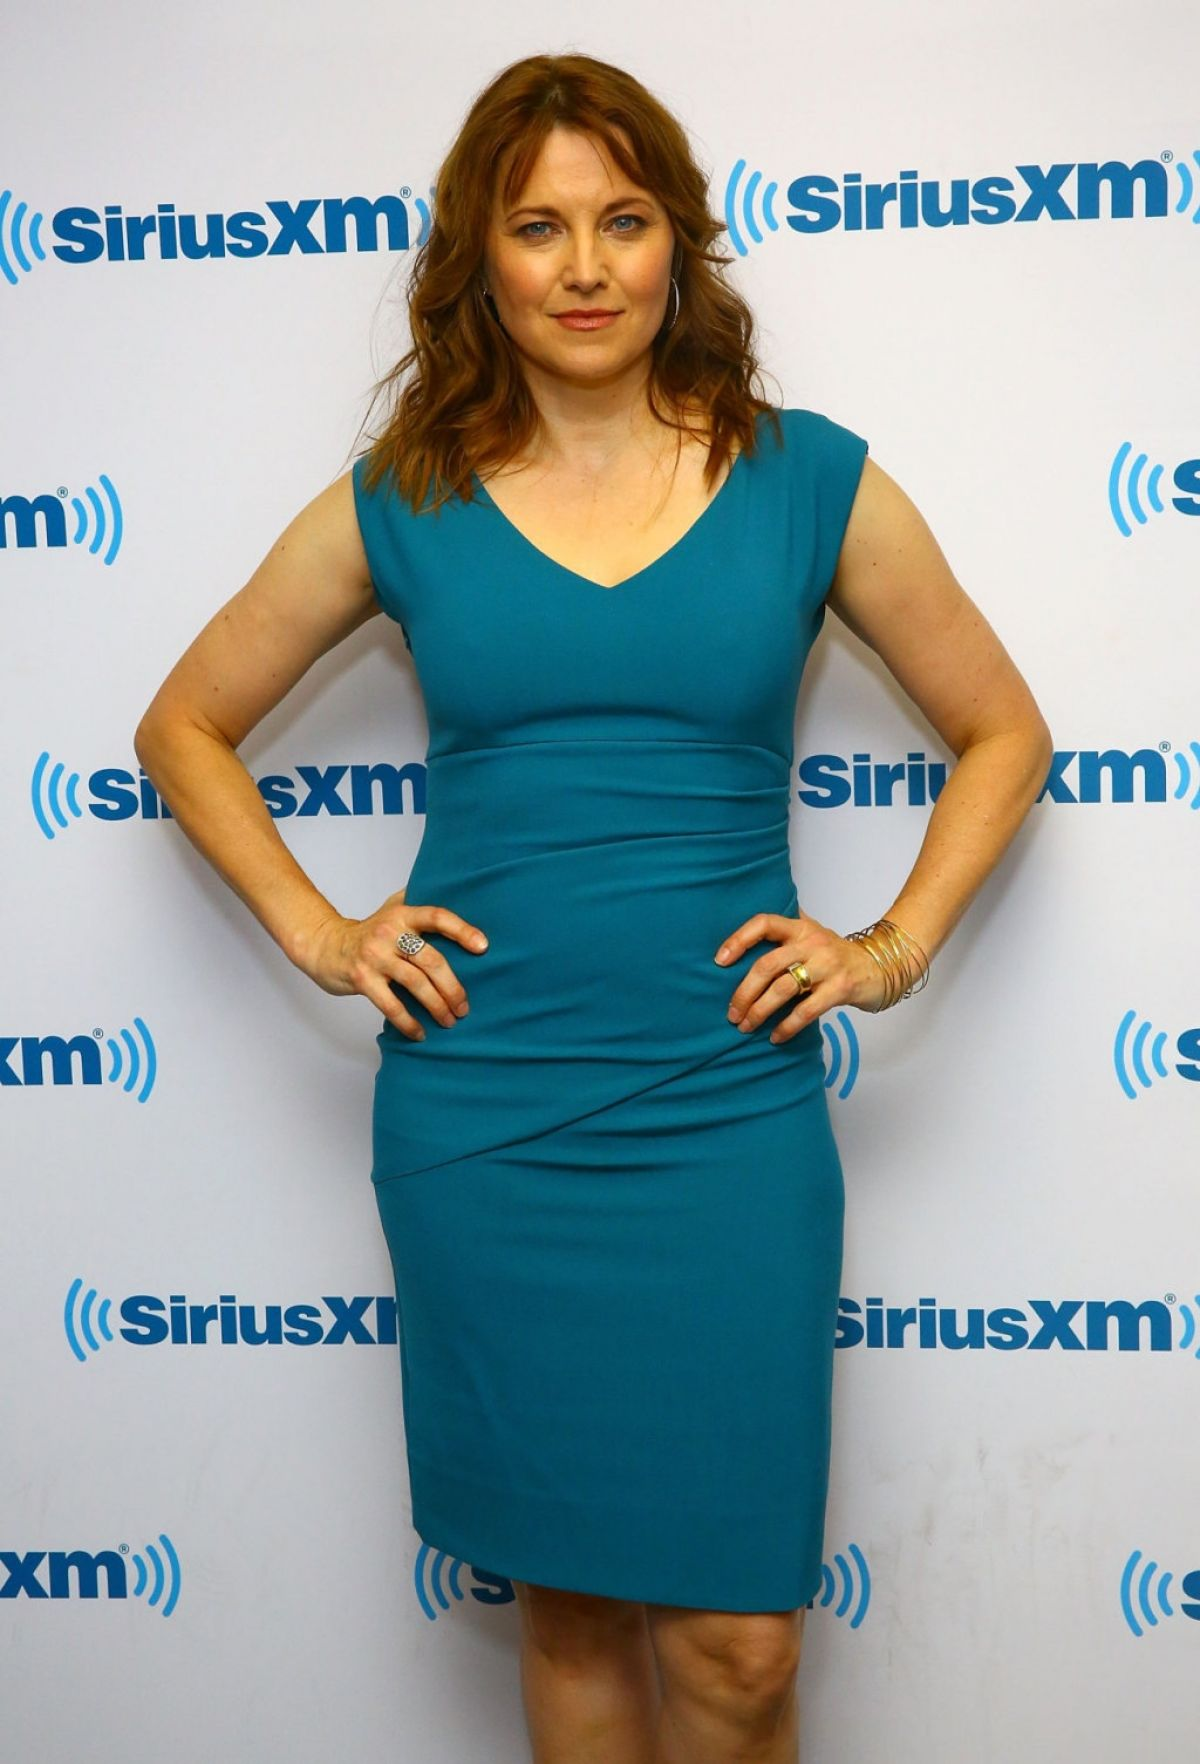 LUCY LAWLESS at SiriusXM Studios in New York 10/26/2015